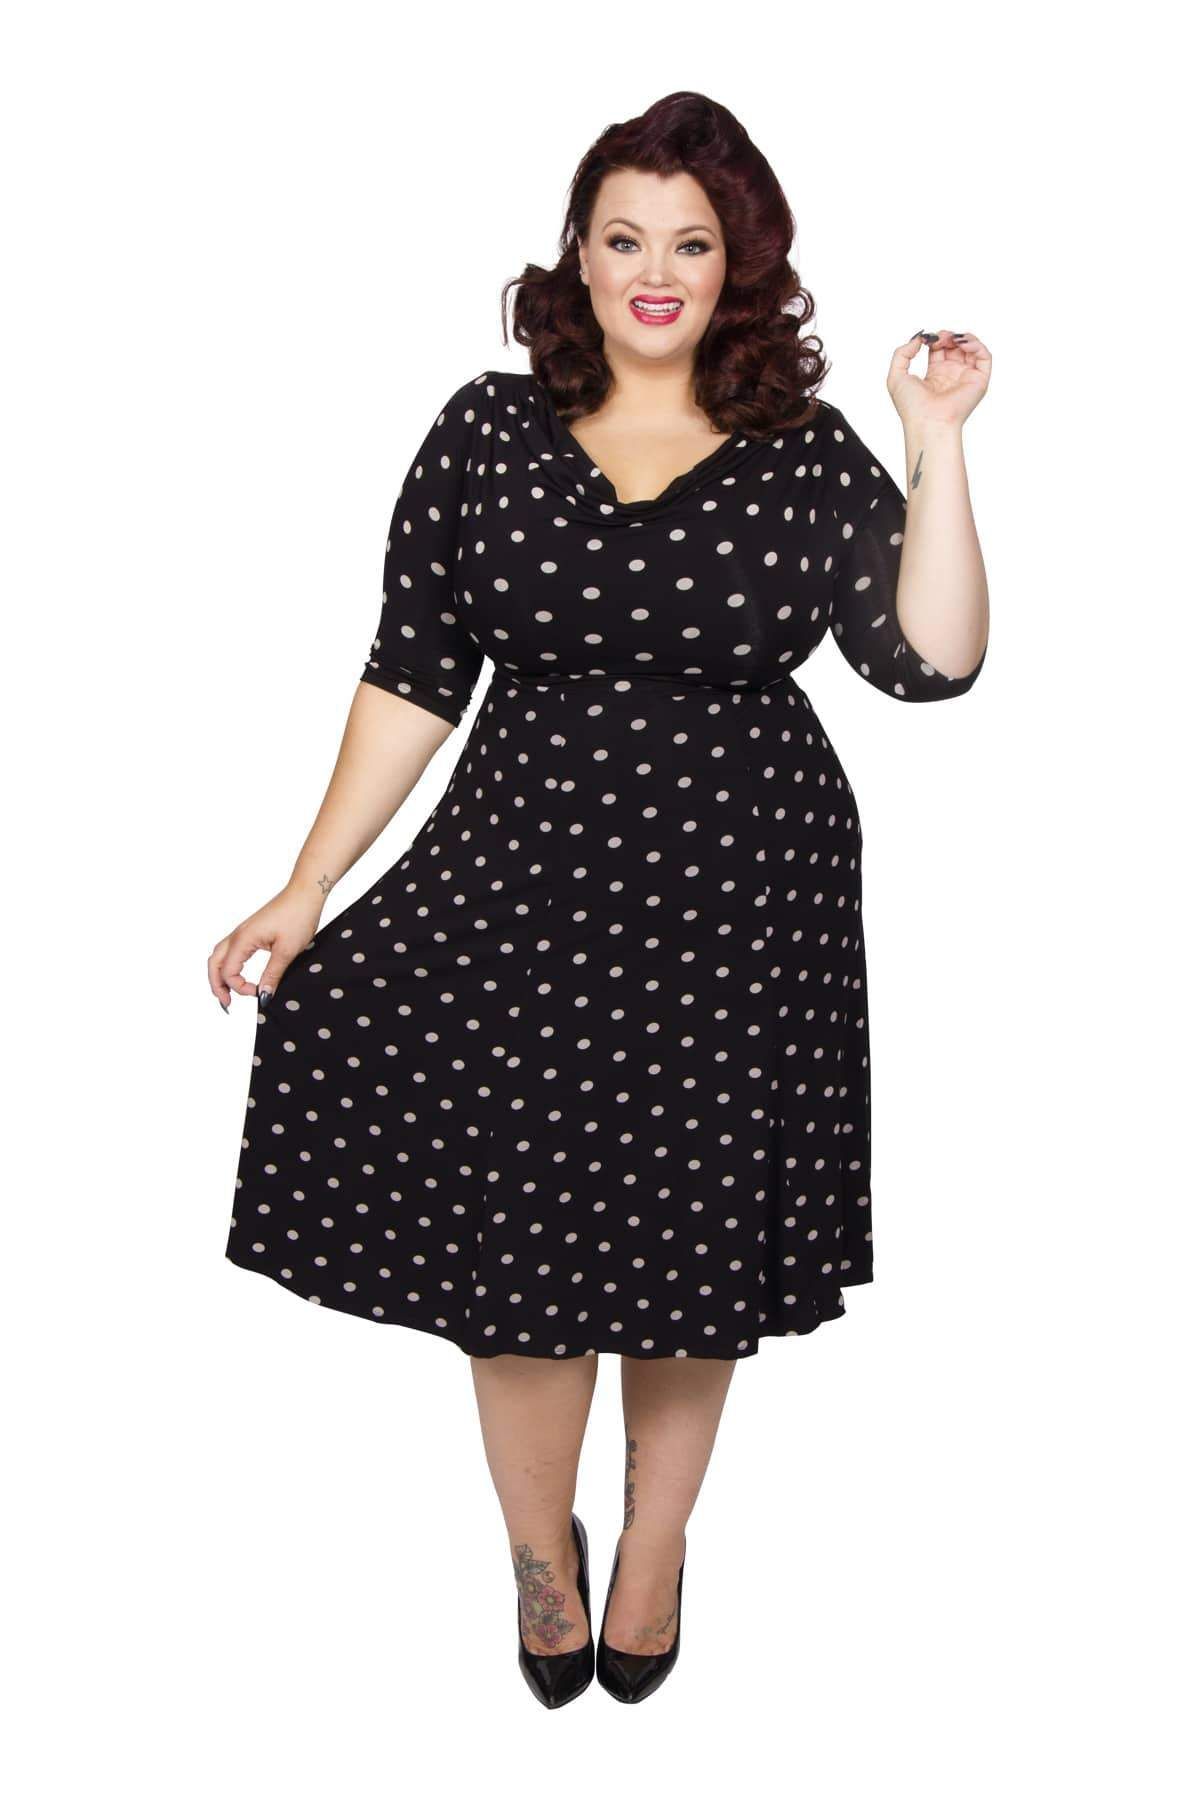 1940s Fashion Advice for Short Women Lollidot Cowl Neck 40s Dress - BlackWhite  12 £60.00 AT vintagedancer.com